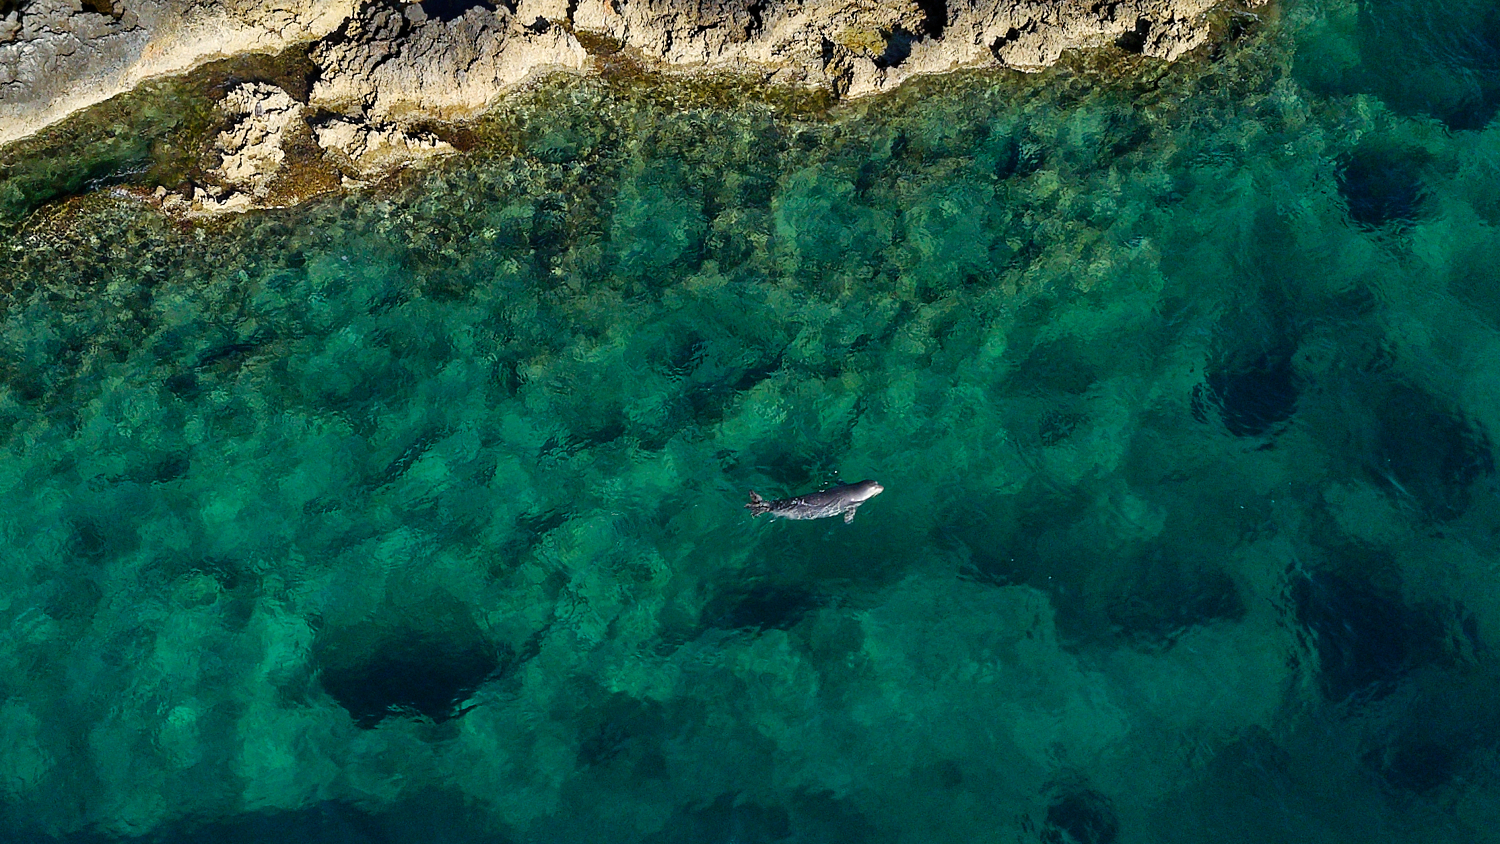 Aerial drones are useful to spot and follow monk seals, without disturbing them © Octopus Foundation